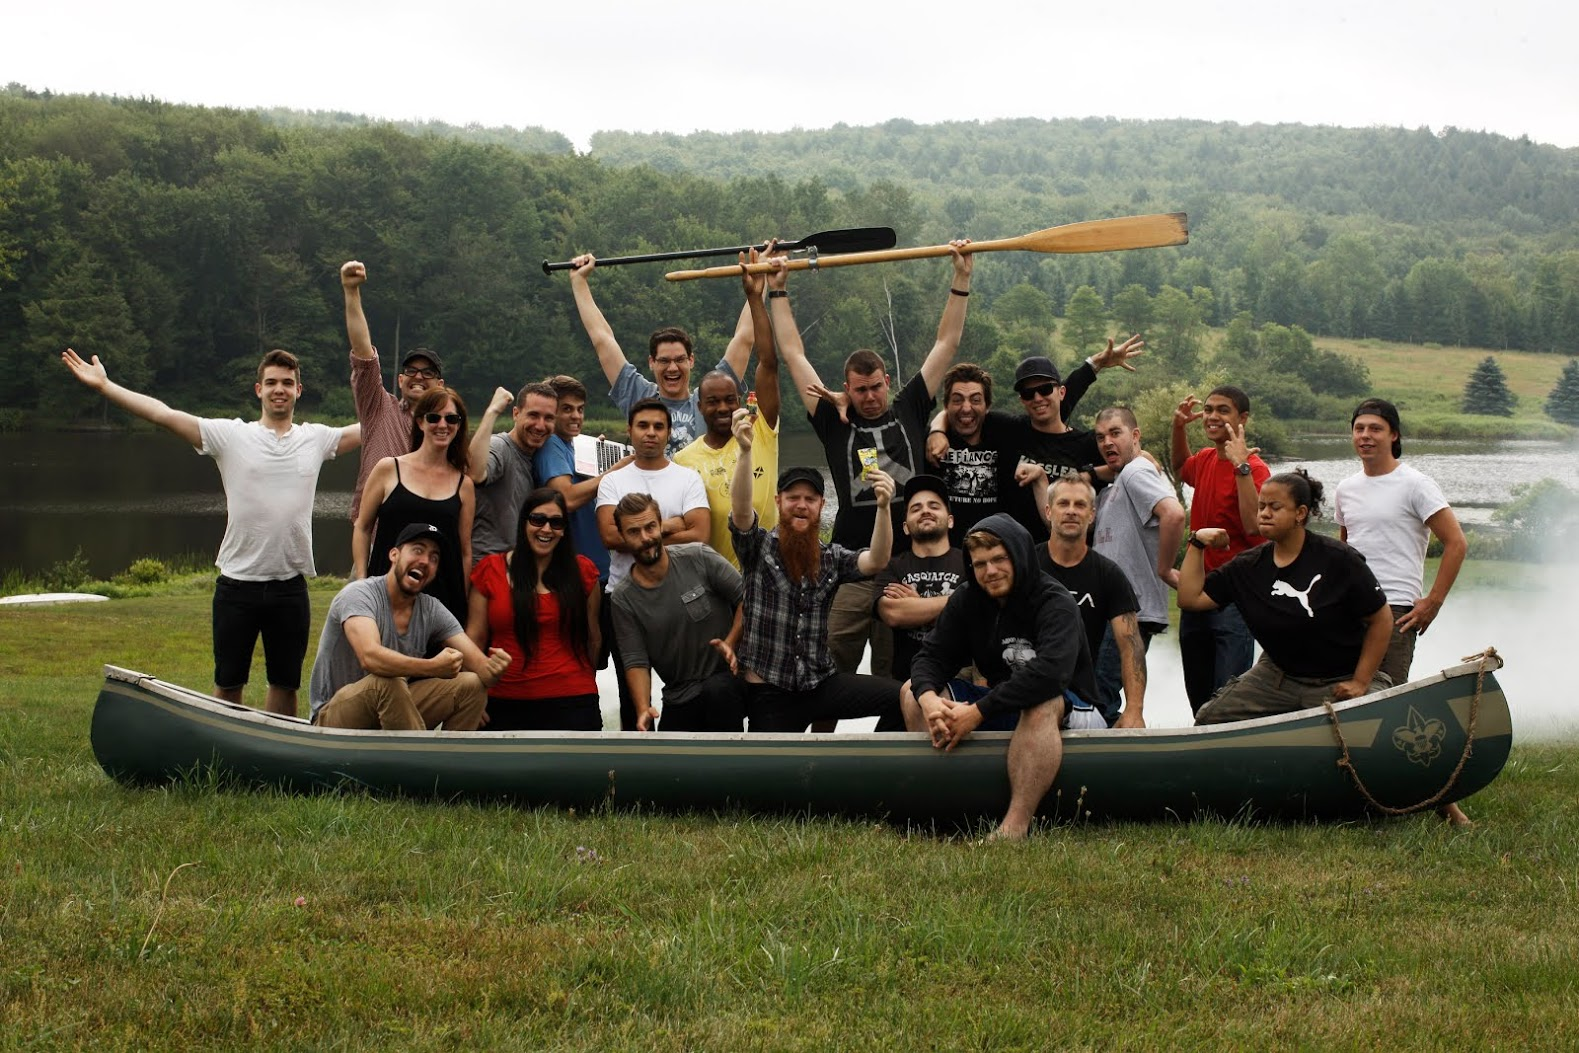 Cast and crew of  Boy Scouts promo shoot, featured on Andy's  Client Blog .Photo credit: Joey L.